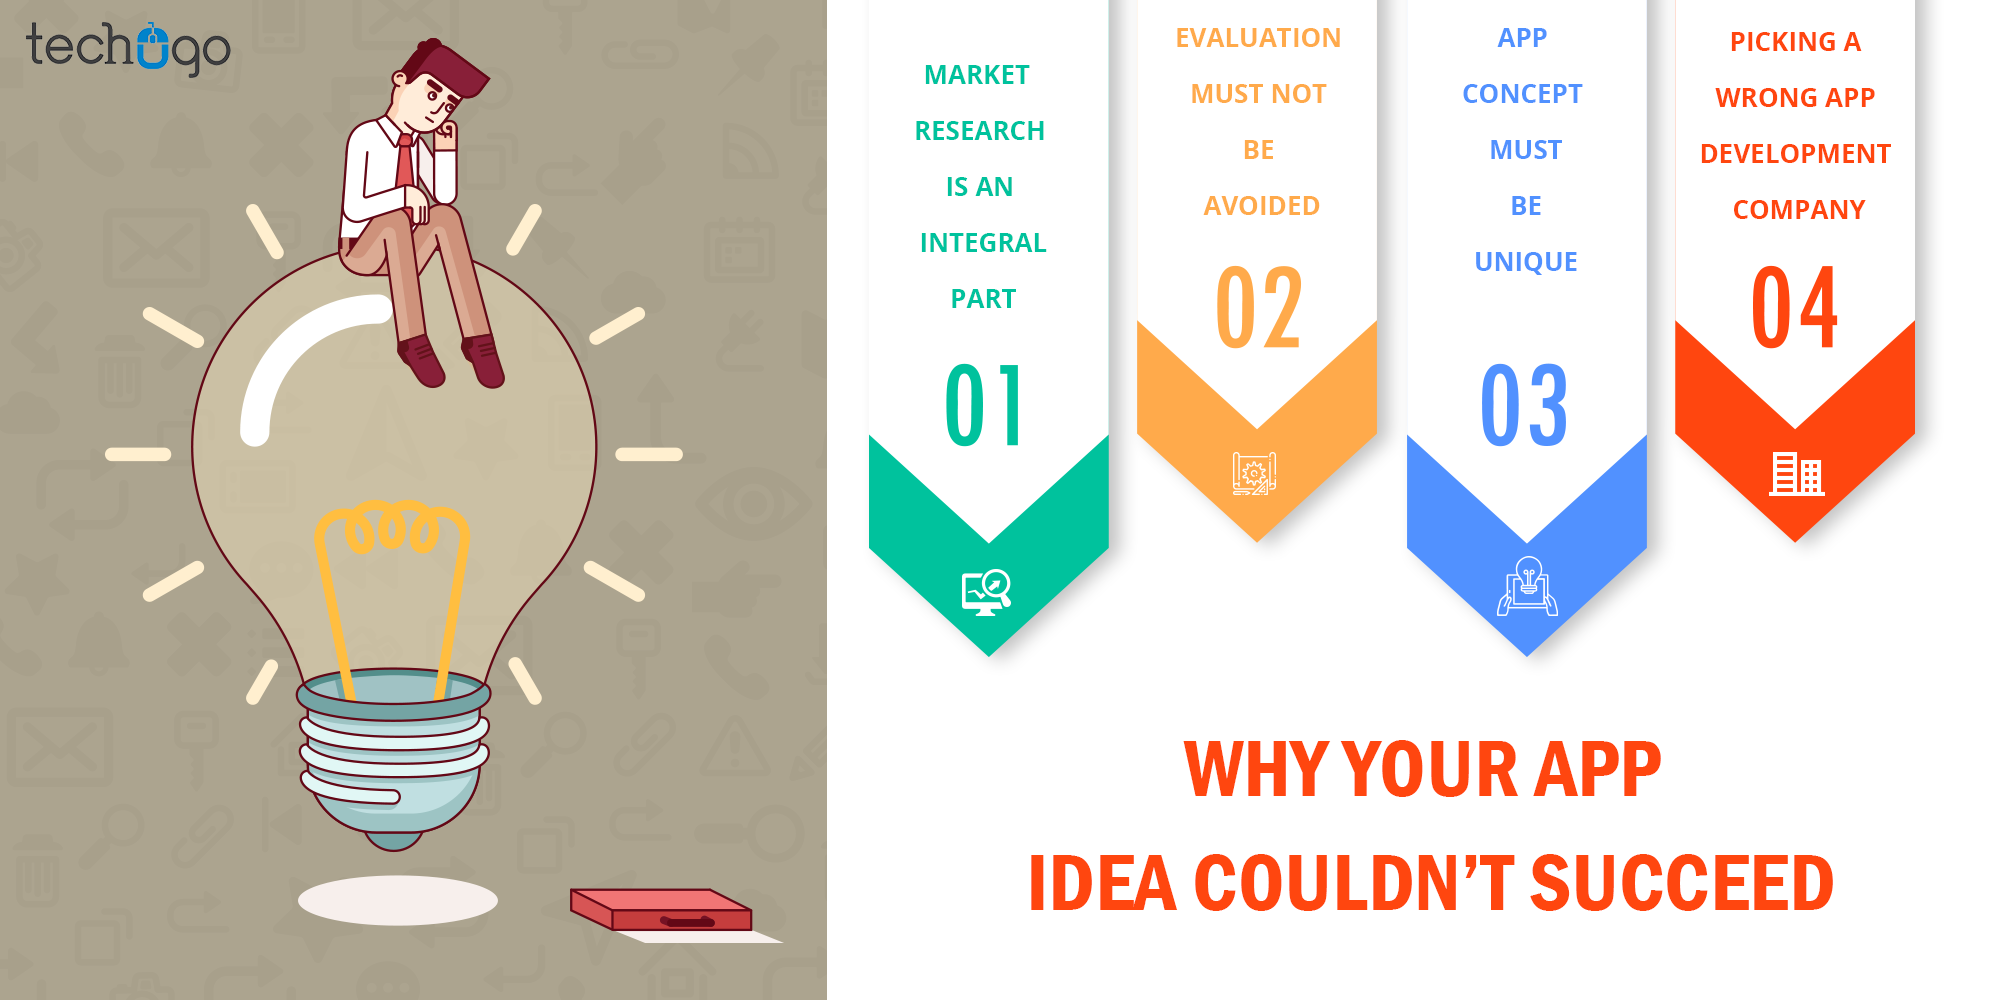 WHY YOUR APP IDEA COULDN'T SUCCEED